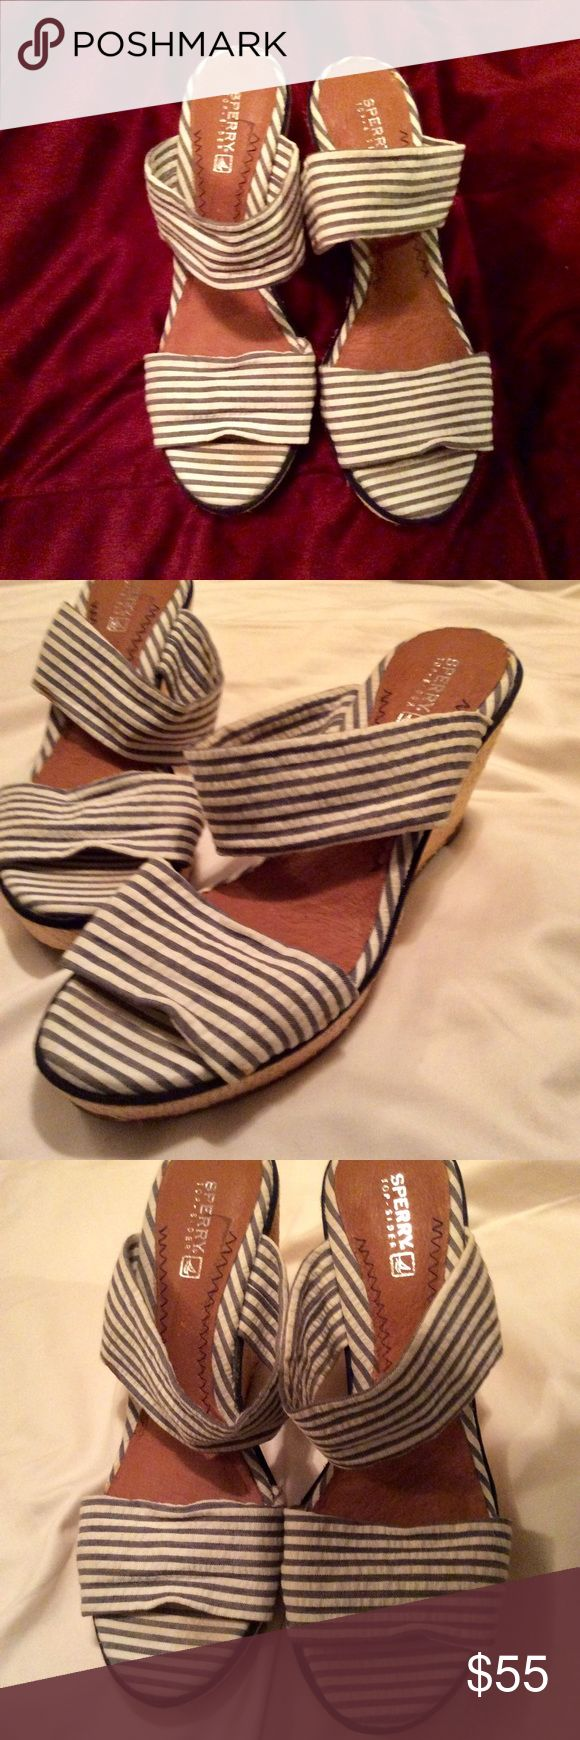 Perfect condition Sperry Topsiders wedges. Worn once. Absolutely perfect condition. Irresistible Sperry Topsiders wedges. On trend for spring/summer 2018. Must have shoes! Sperry Top-Sider Shoes Wedges